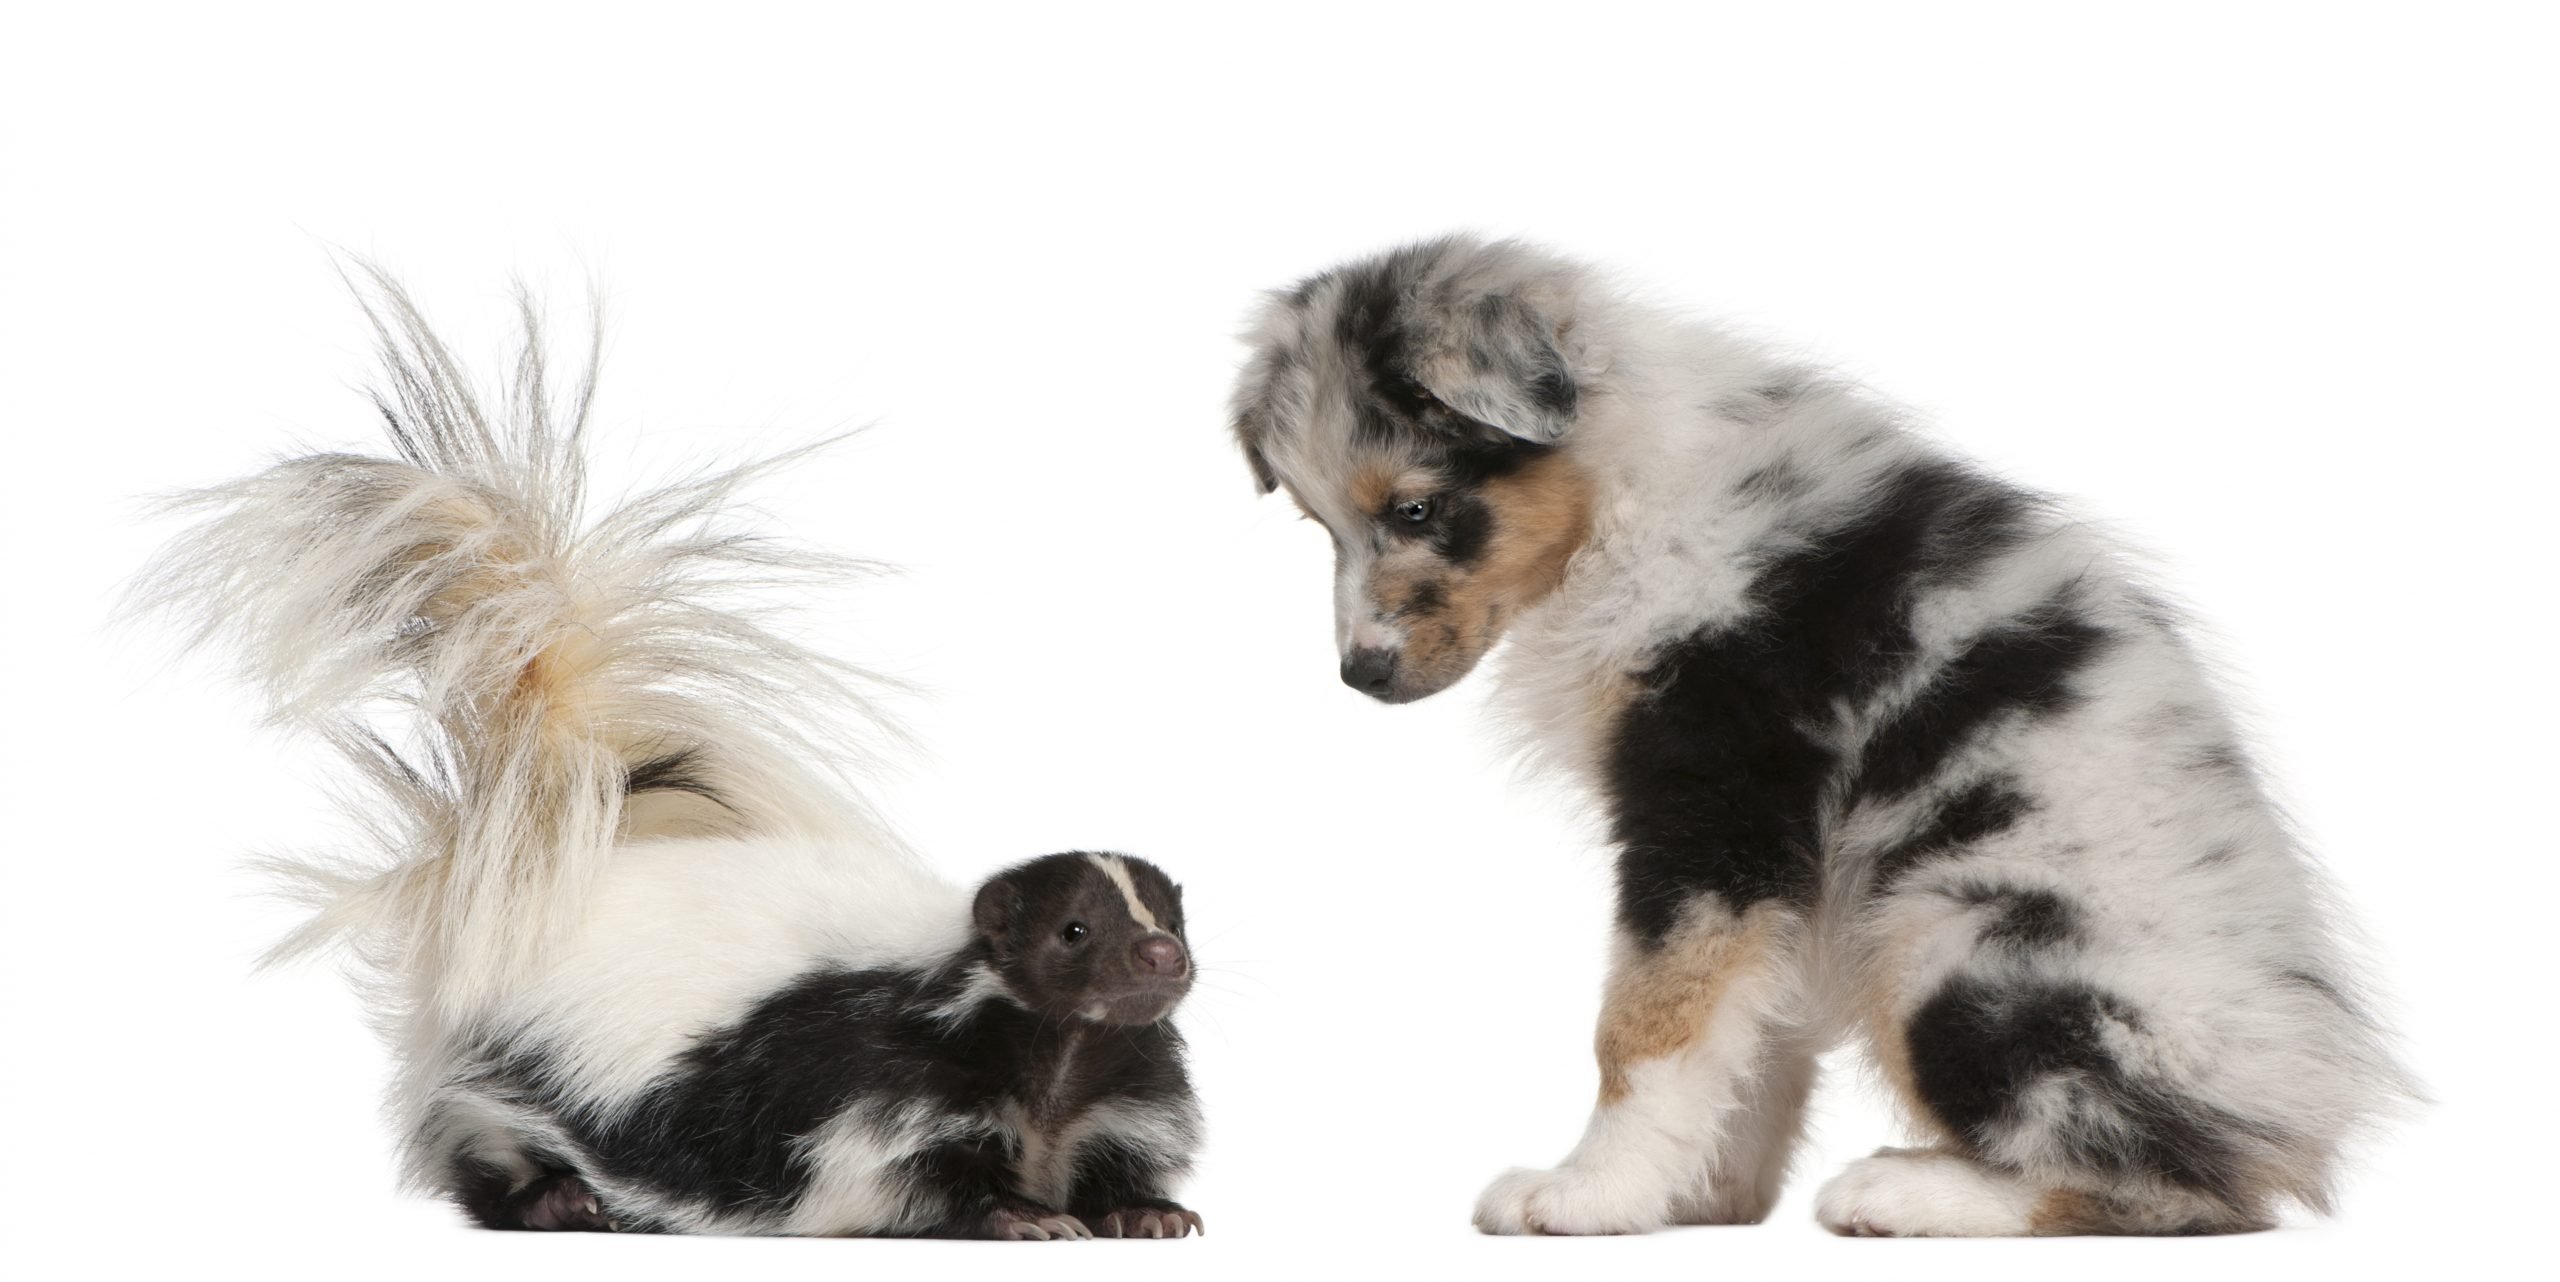 What do you know about skunks?